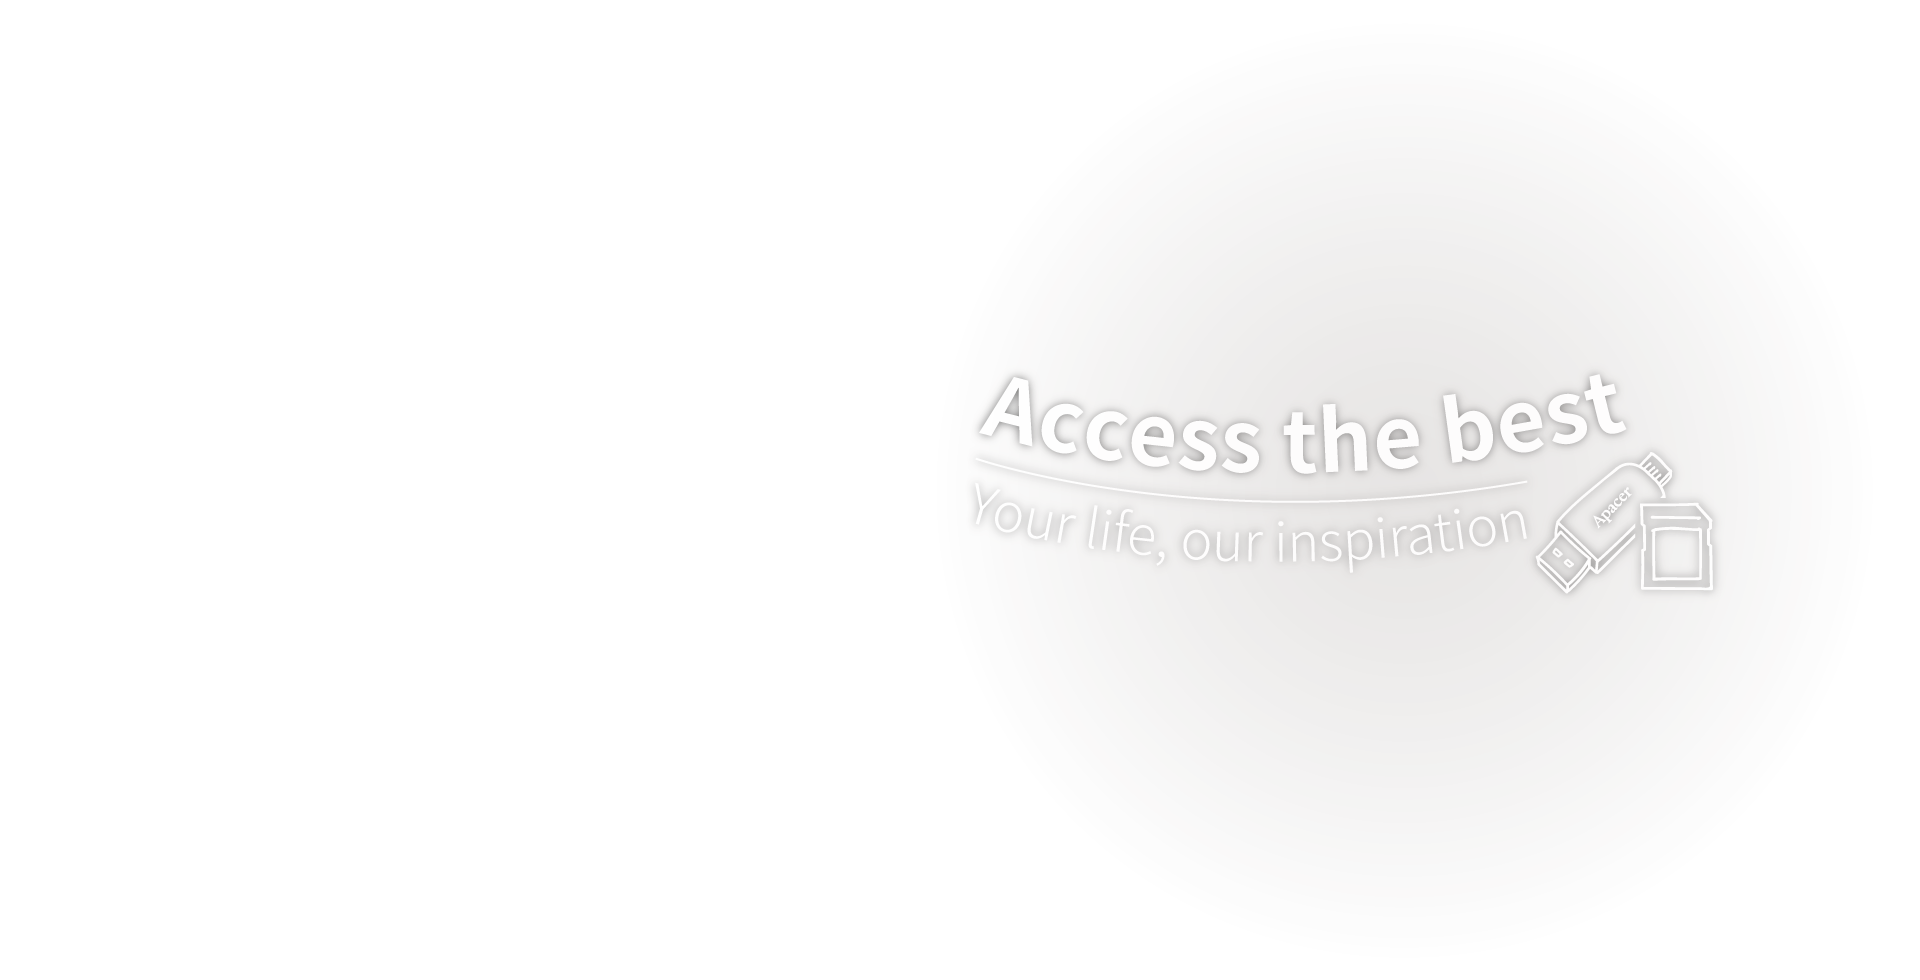 Access the best. Your life, our inspiration.